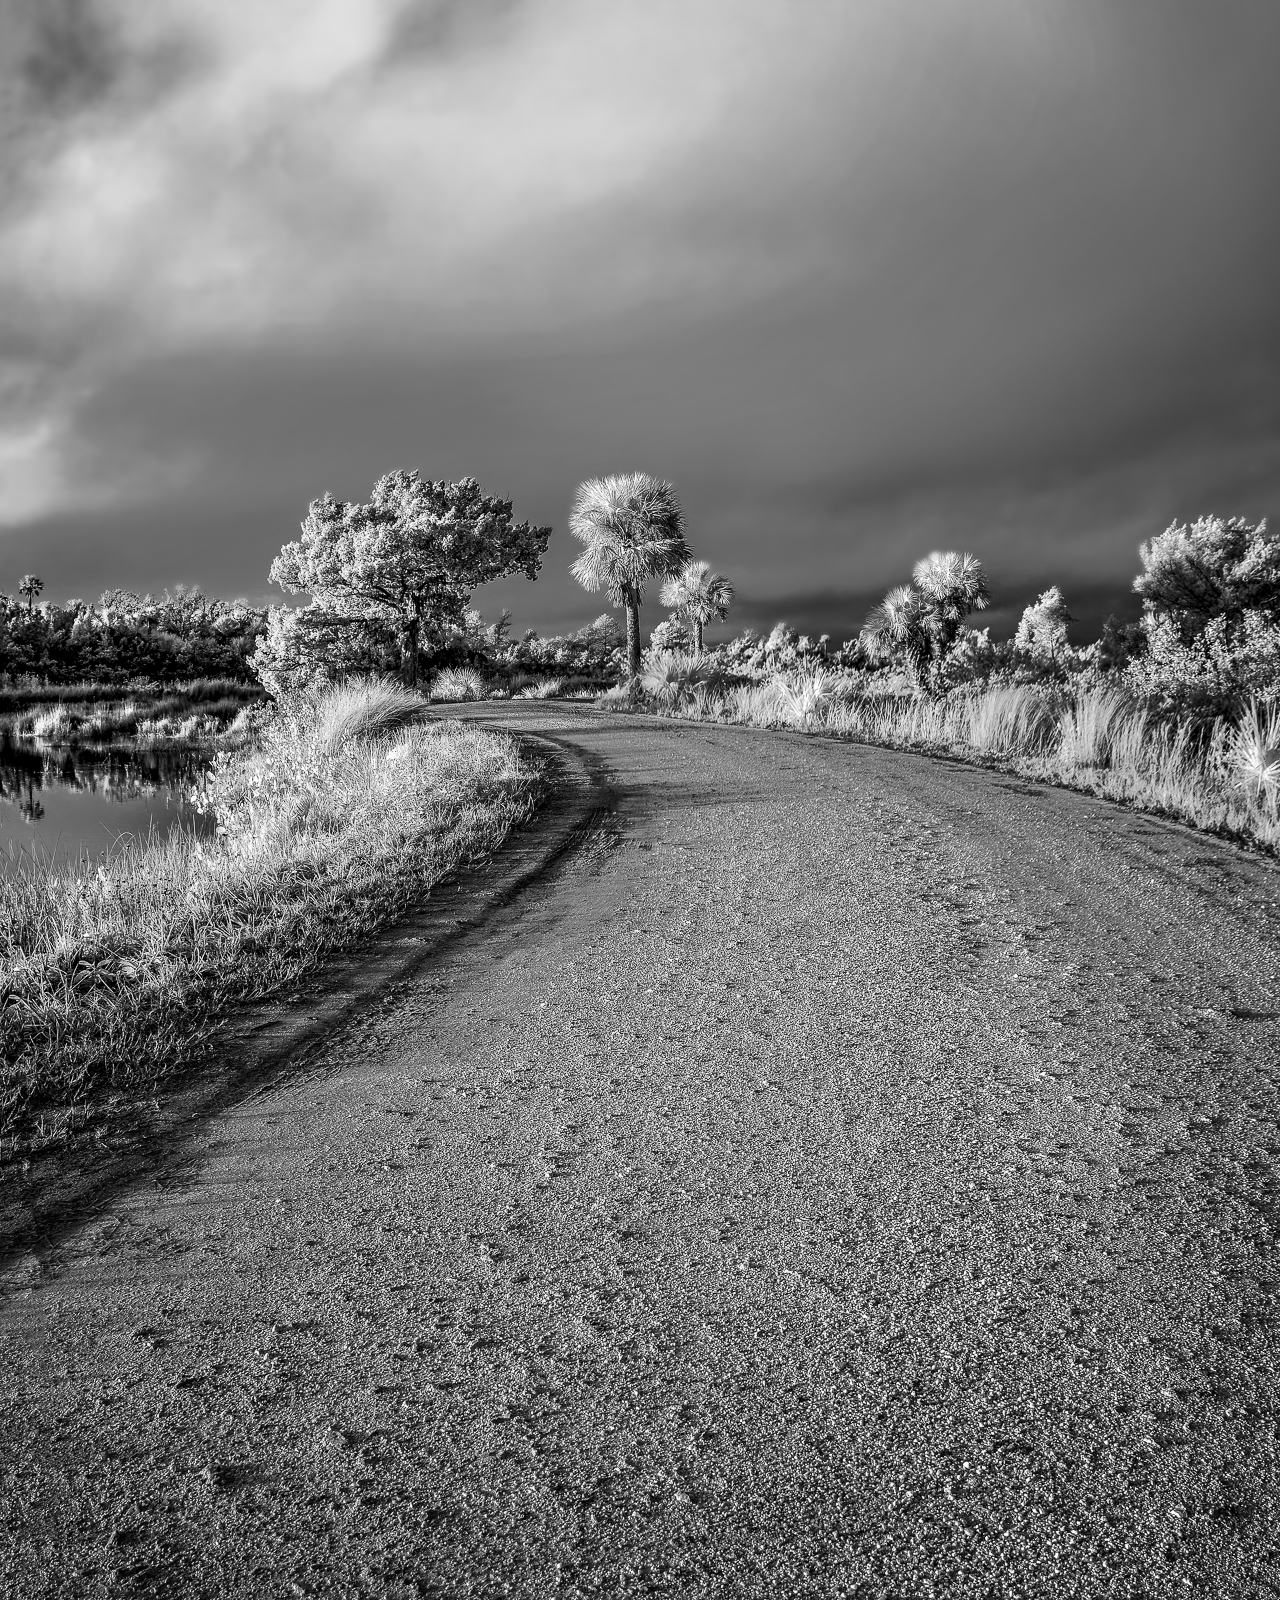 Morning Road in IR: Black Point Wildlife Drive